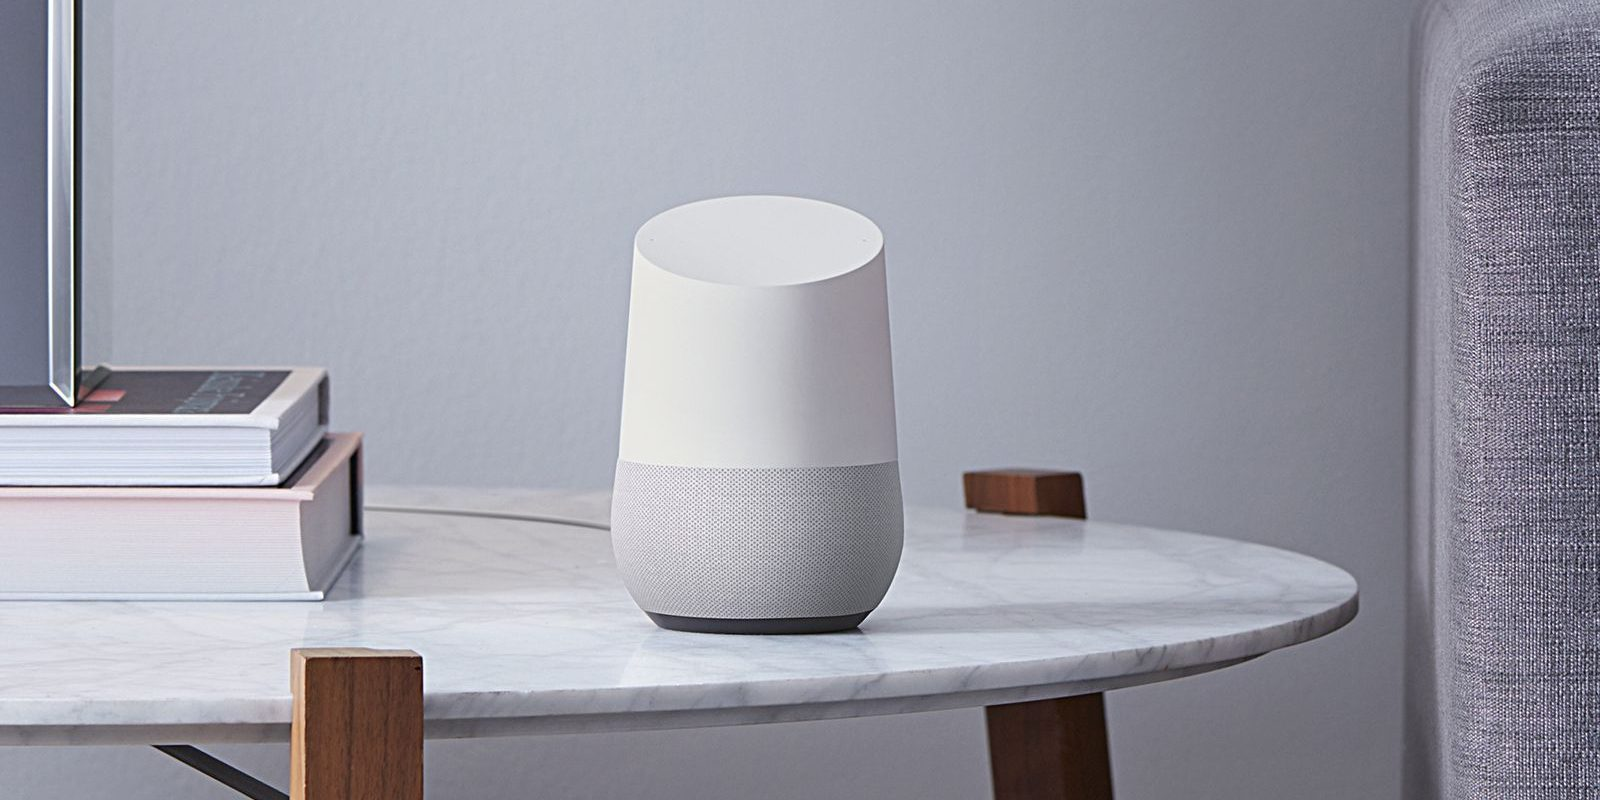 google-home-picture.jpeg